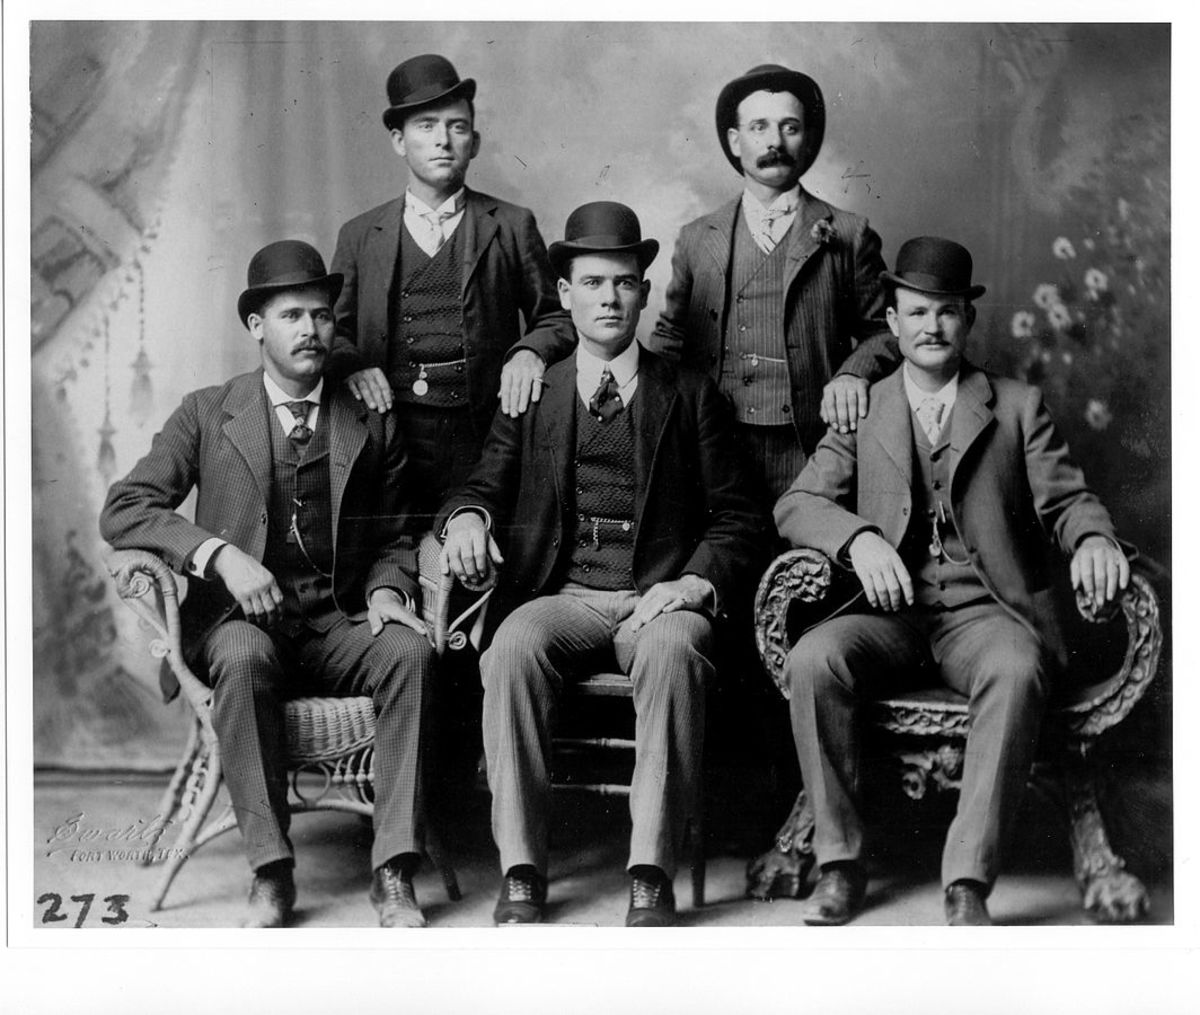 Butch Cassidy and his group of outlaws The Wild Bunch often spent time at the Basset home